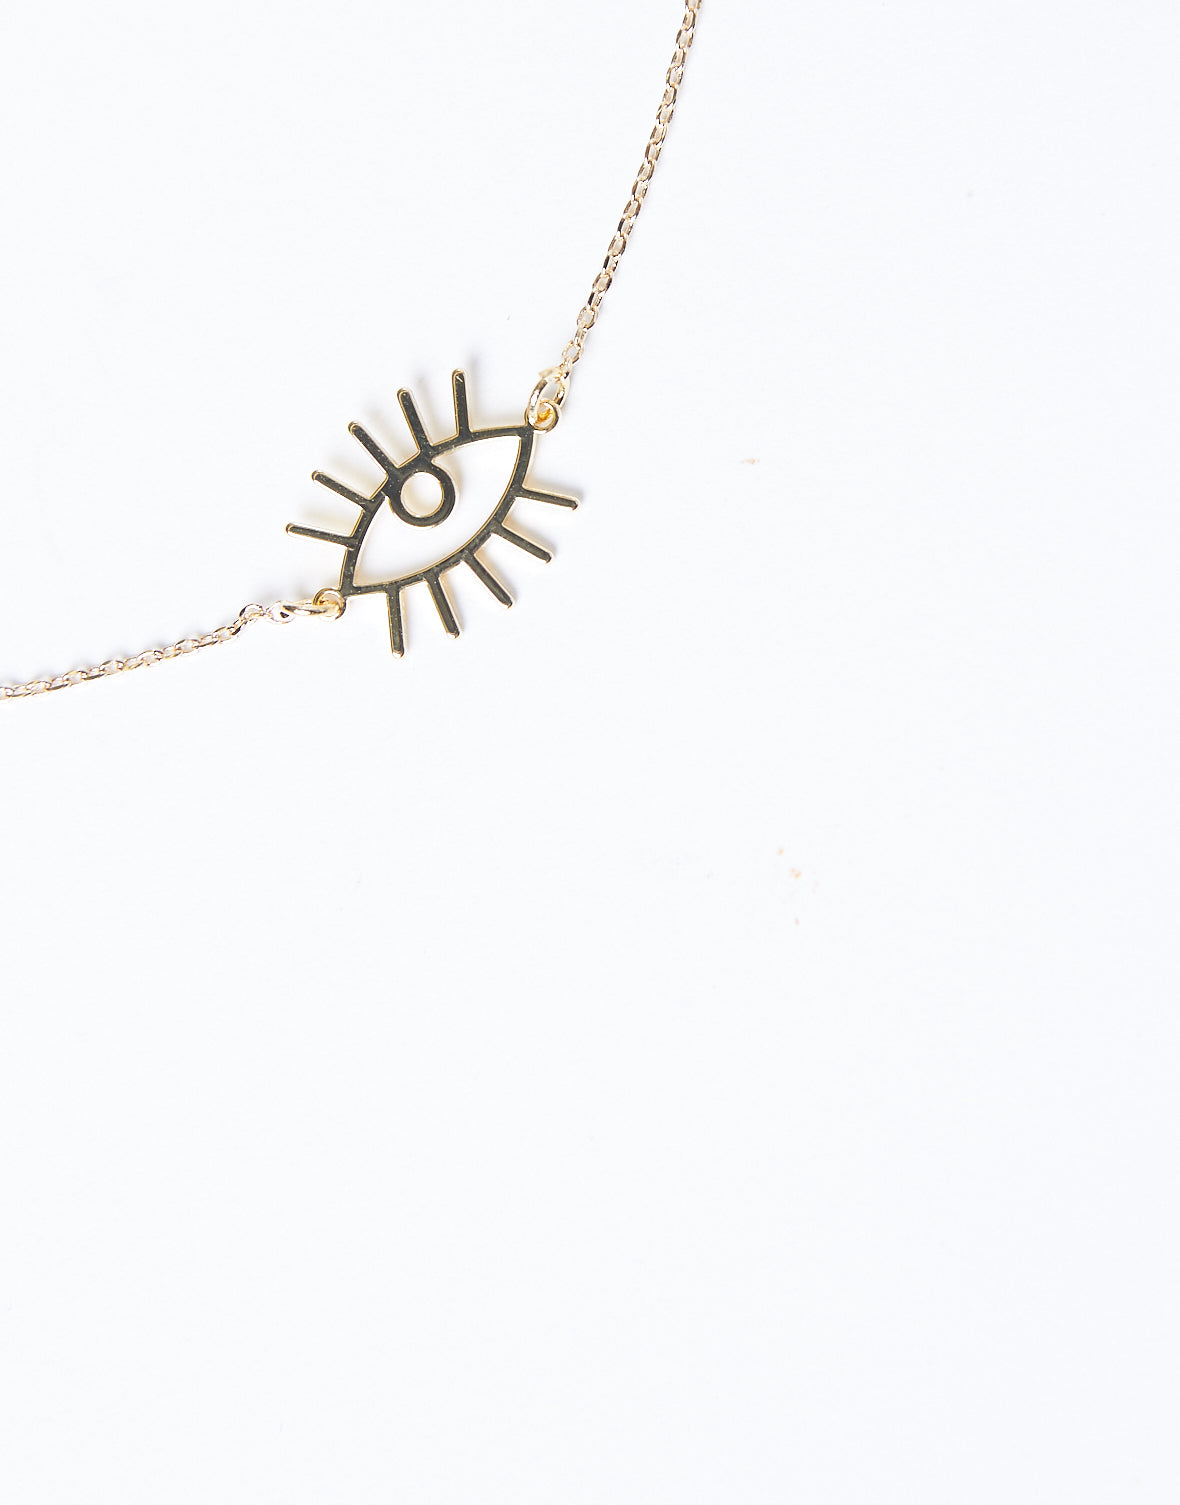 Eyes On You Dainty Chain Necklace